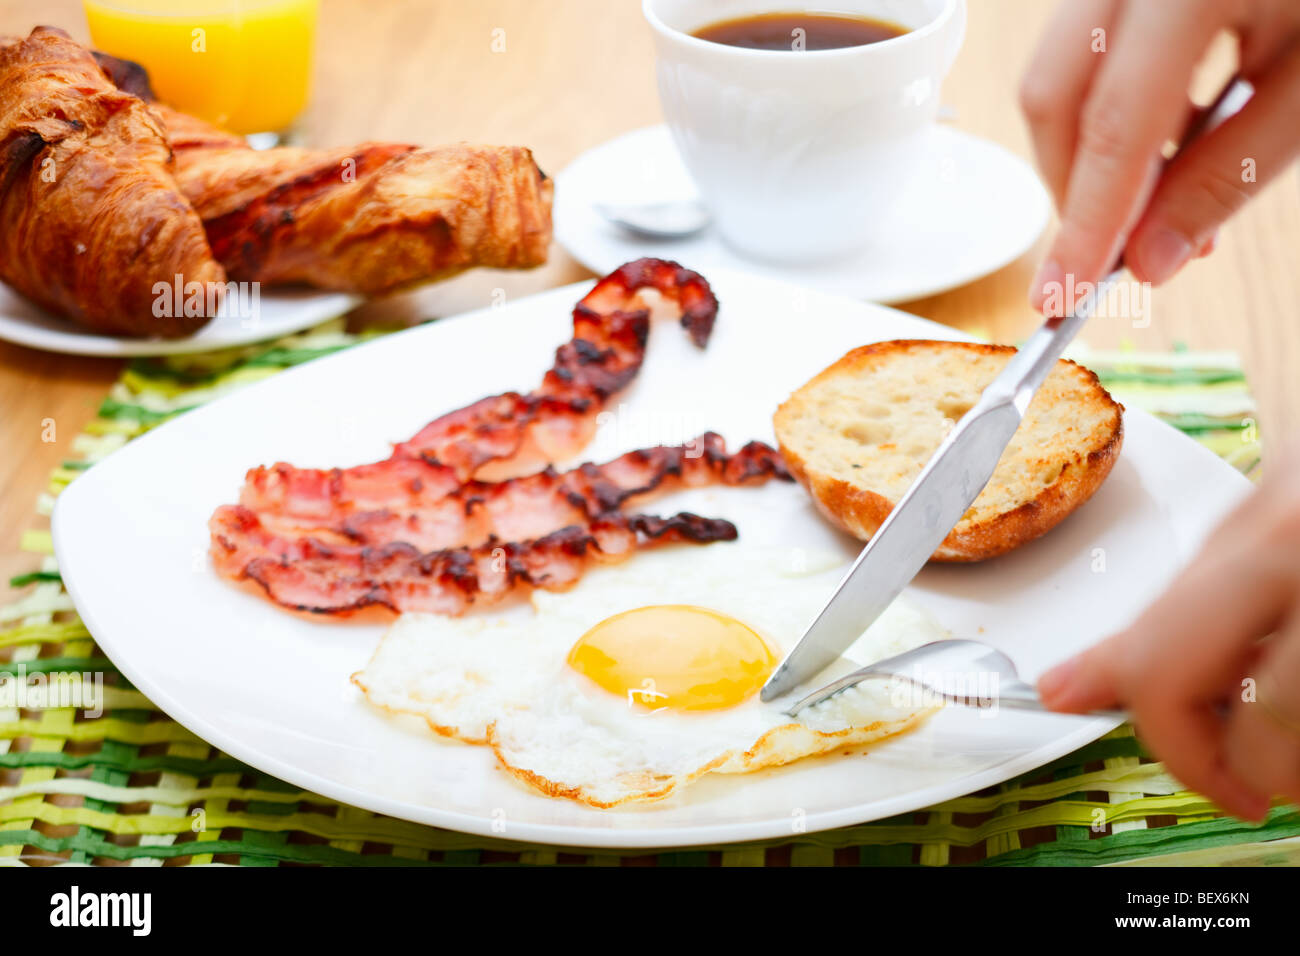 Delicious breakfast served. Corn flakes with berries, fried egg, bacon, toast, croissants, juice and fresh coffee. - Stock Image